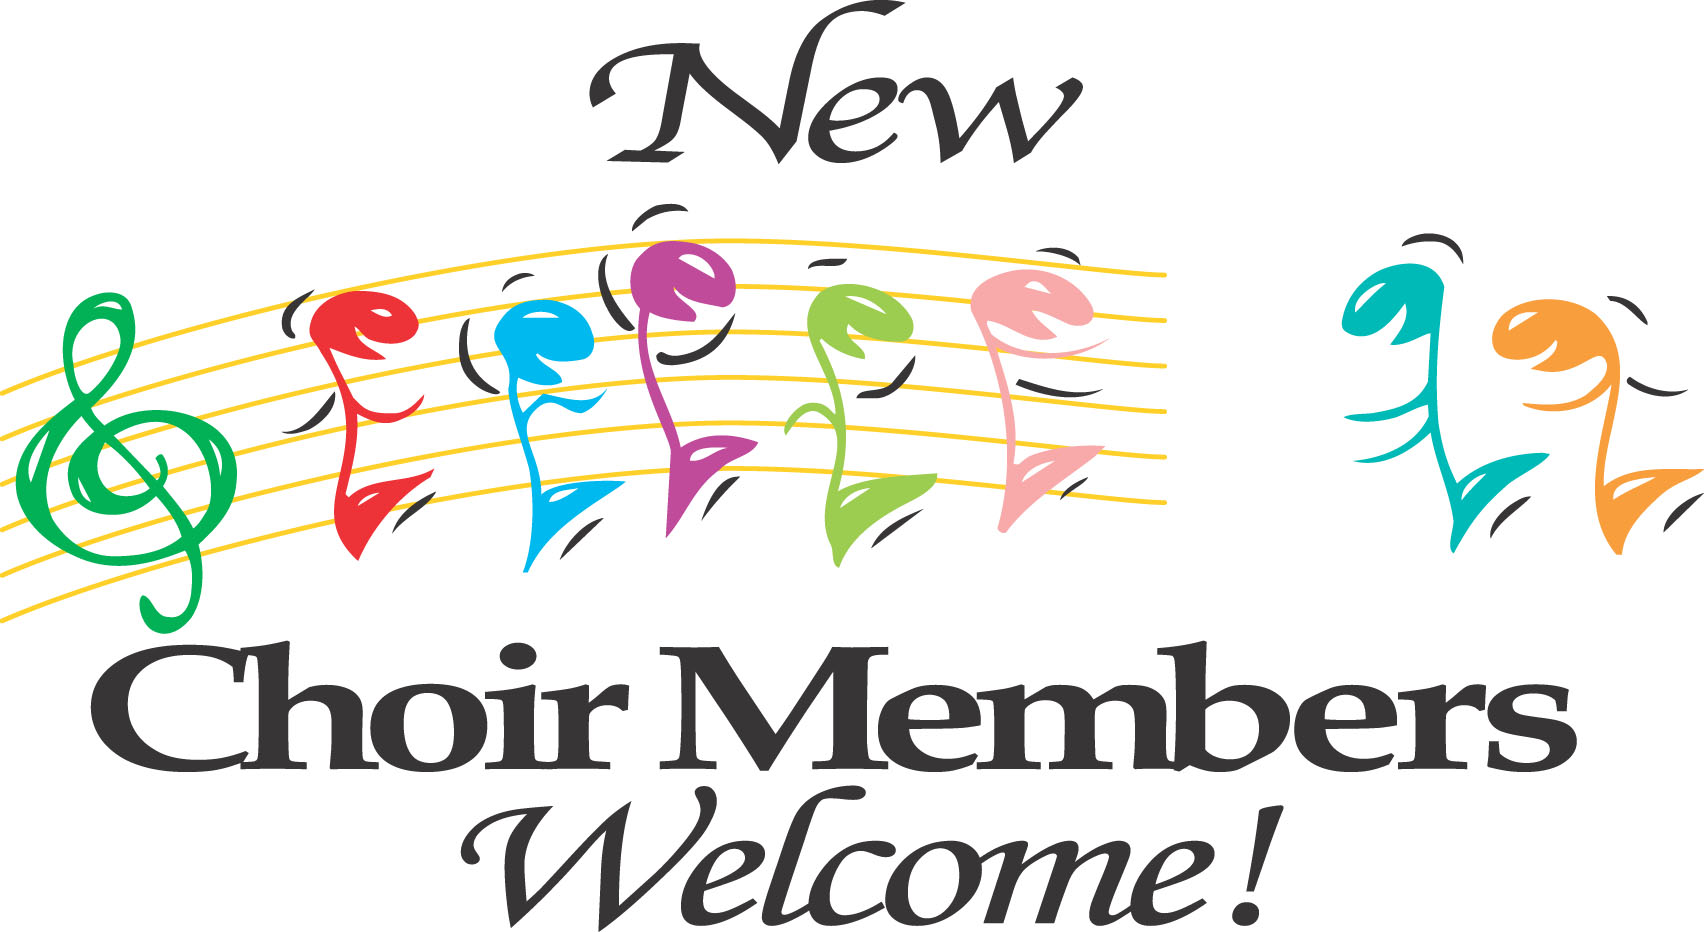 Free Choir Pictures, Download Free Clip Art, Free Clip Art.